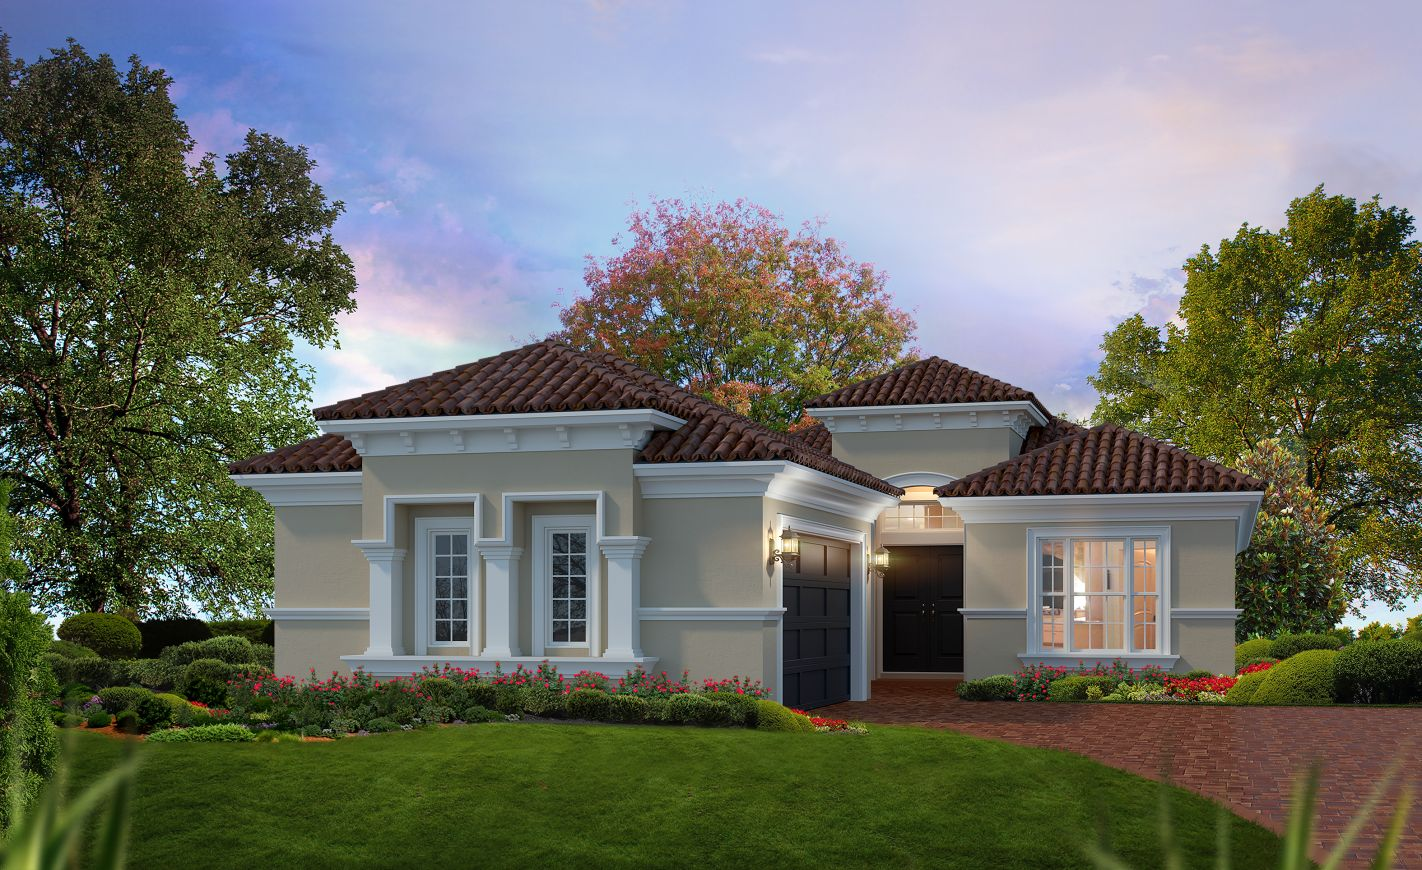 Palm Coast Homes for Sale - The Avina at The Conservatory